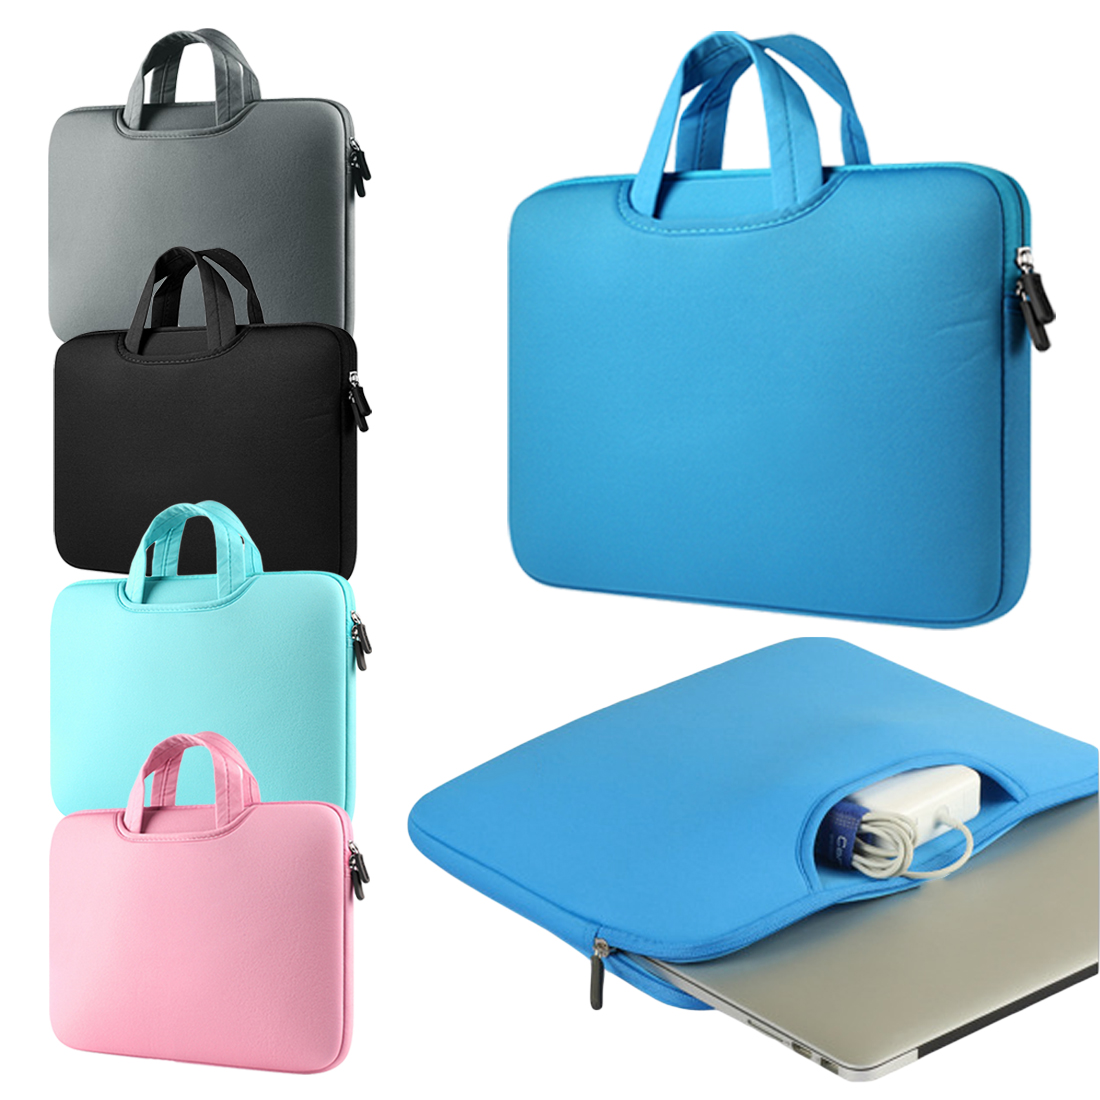 Laptop Bags 11.6 13.3 15.4 15.6 Inch Notebook Bag 13.3 For MacBook Air Pro 13 Case Laptop Bag 11,13,15 Inch Protective Case-in Laptop Bags & Cases from Computer & Office